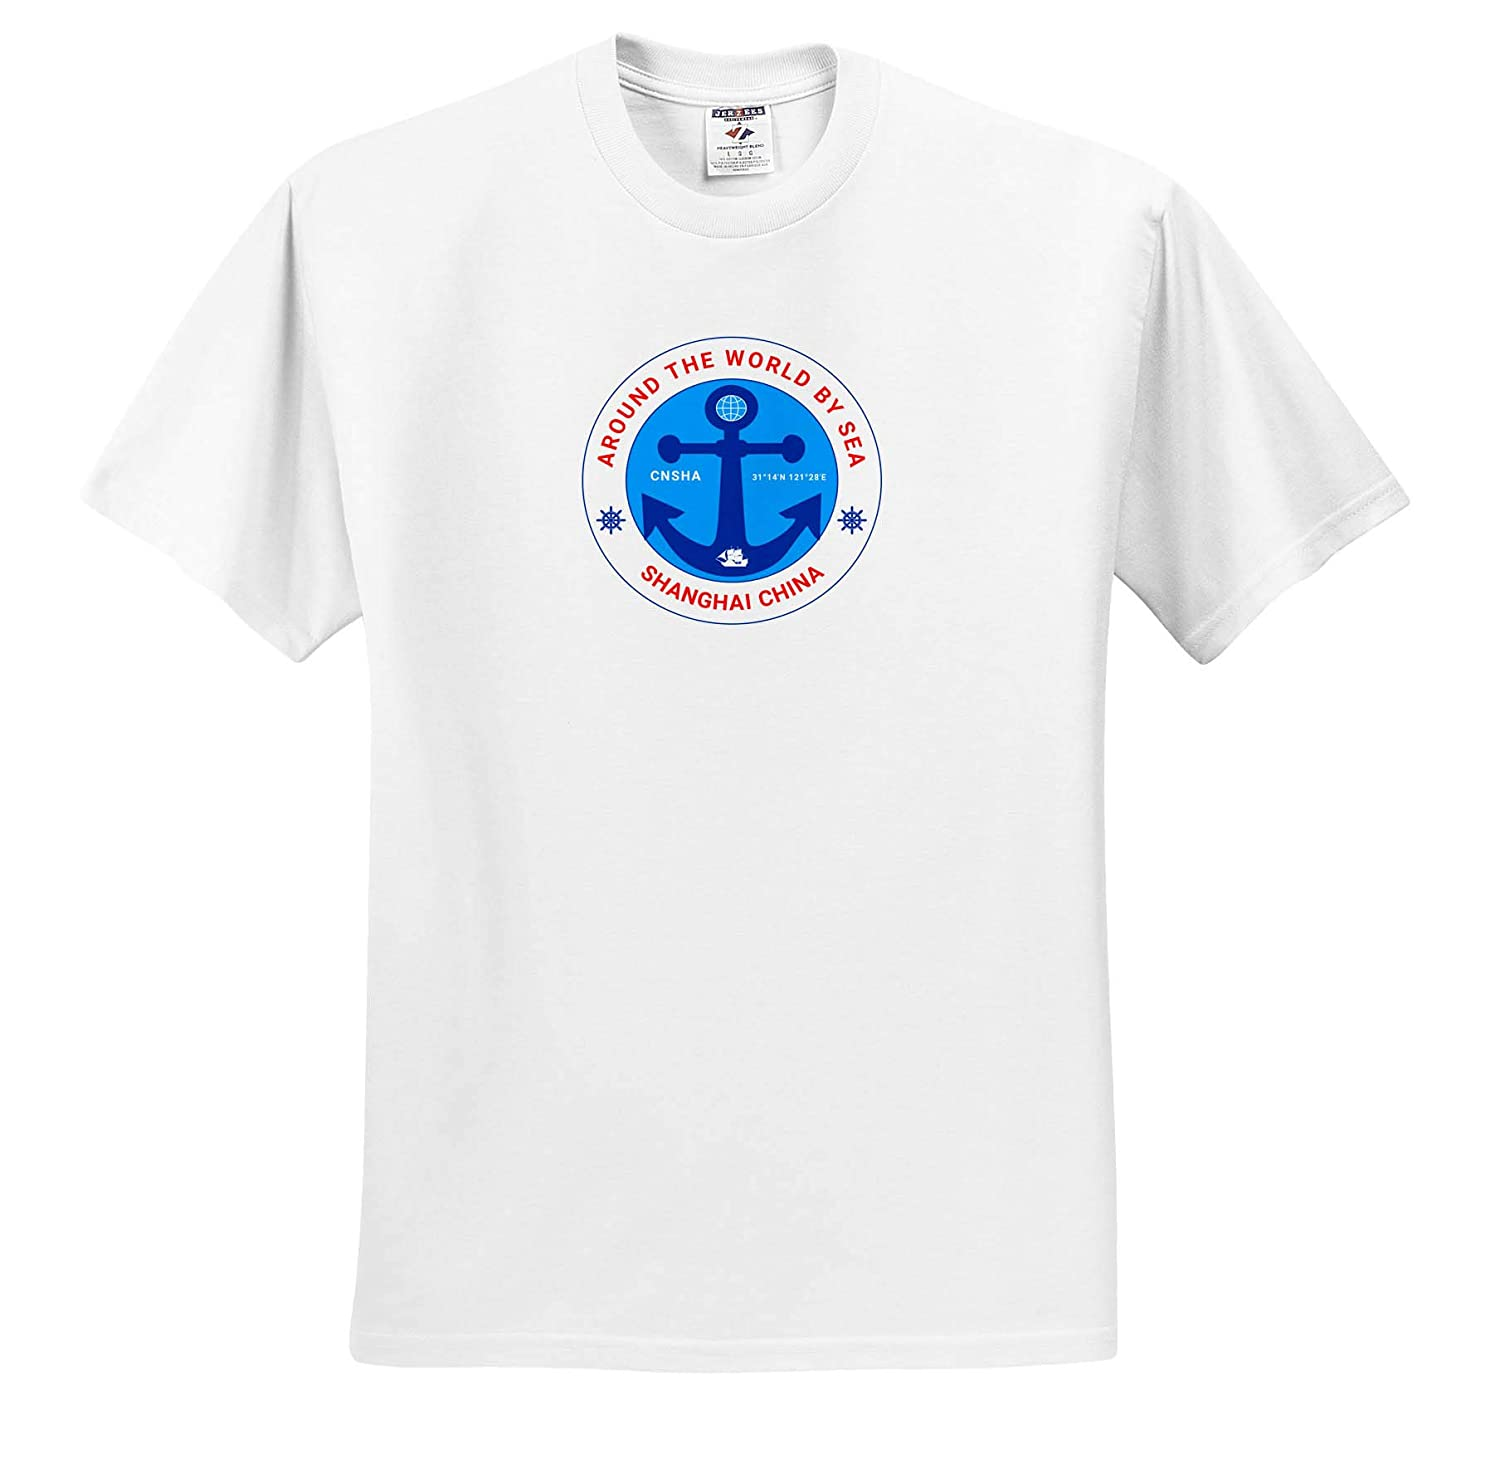 Anchor Around The World by Sea Round Badge Coordinates The red Text Shanghai China T-Shirts 3dRose Alexis Design